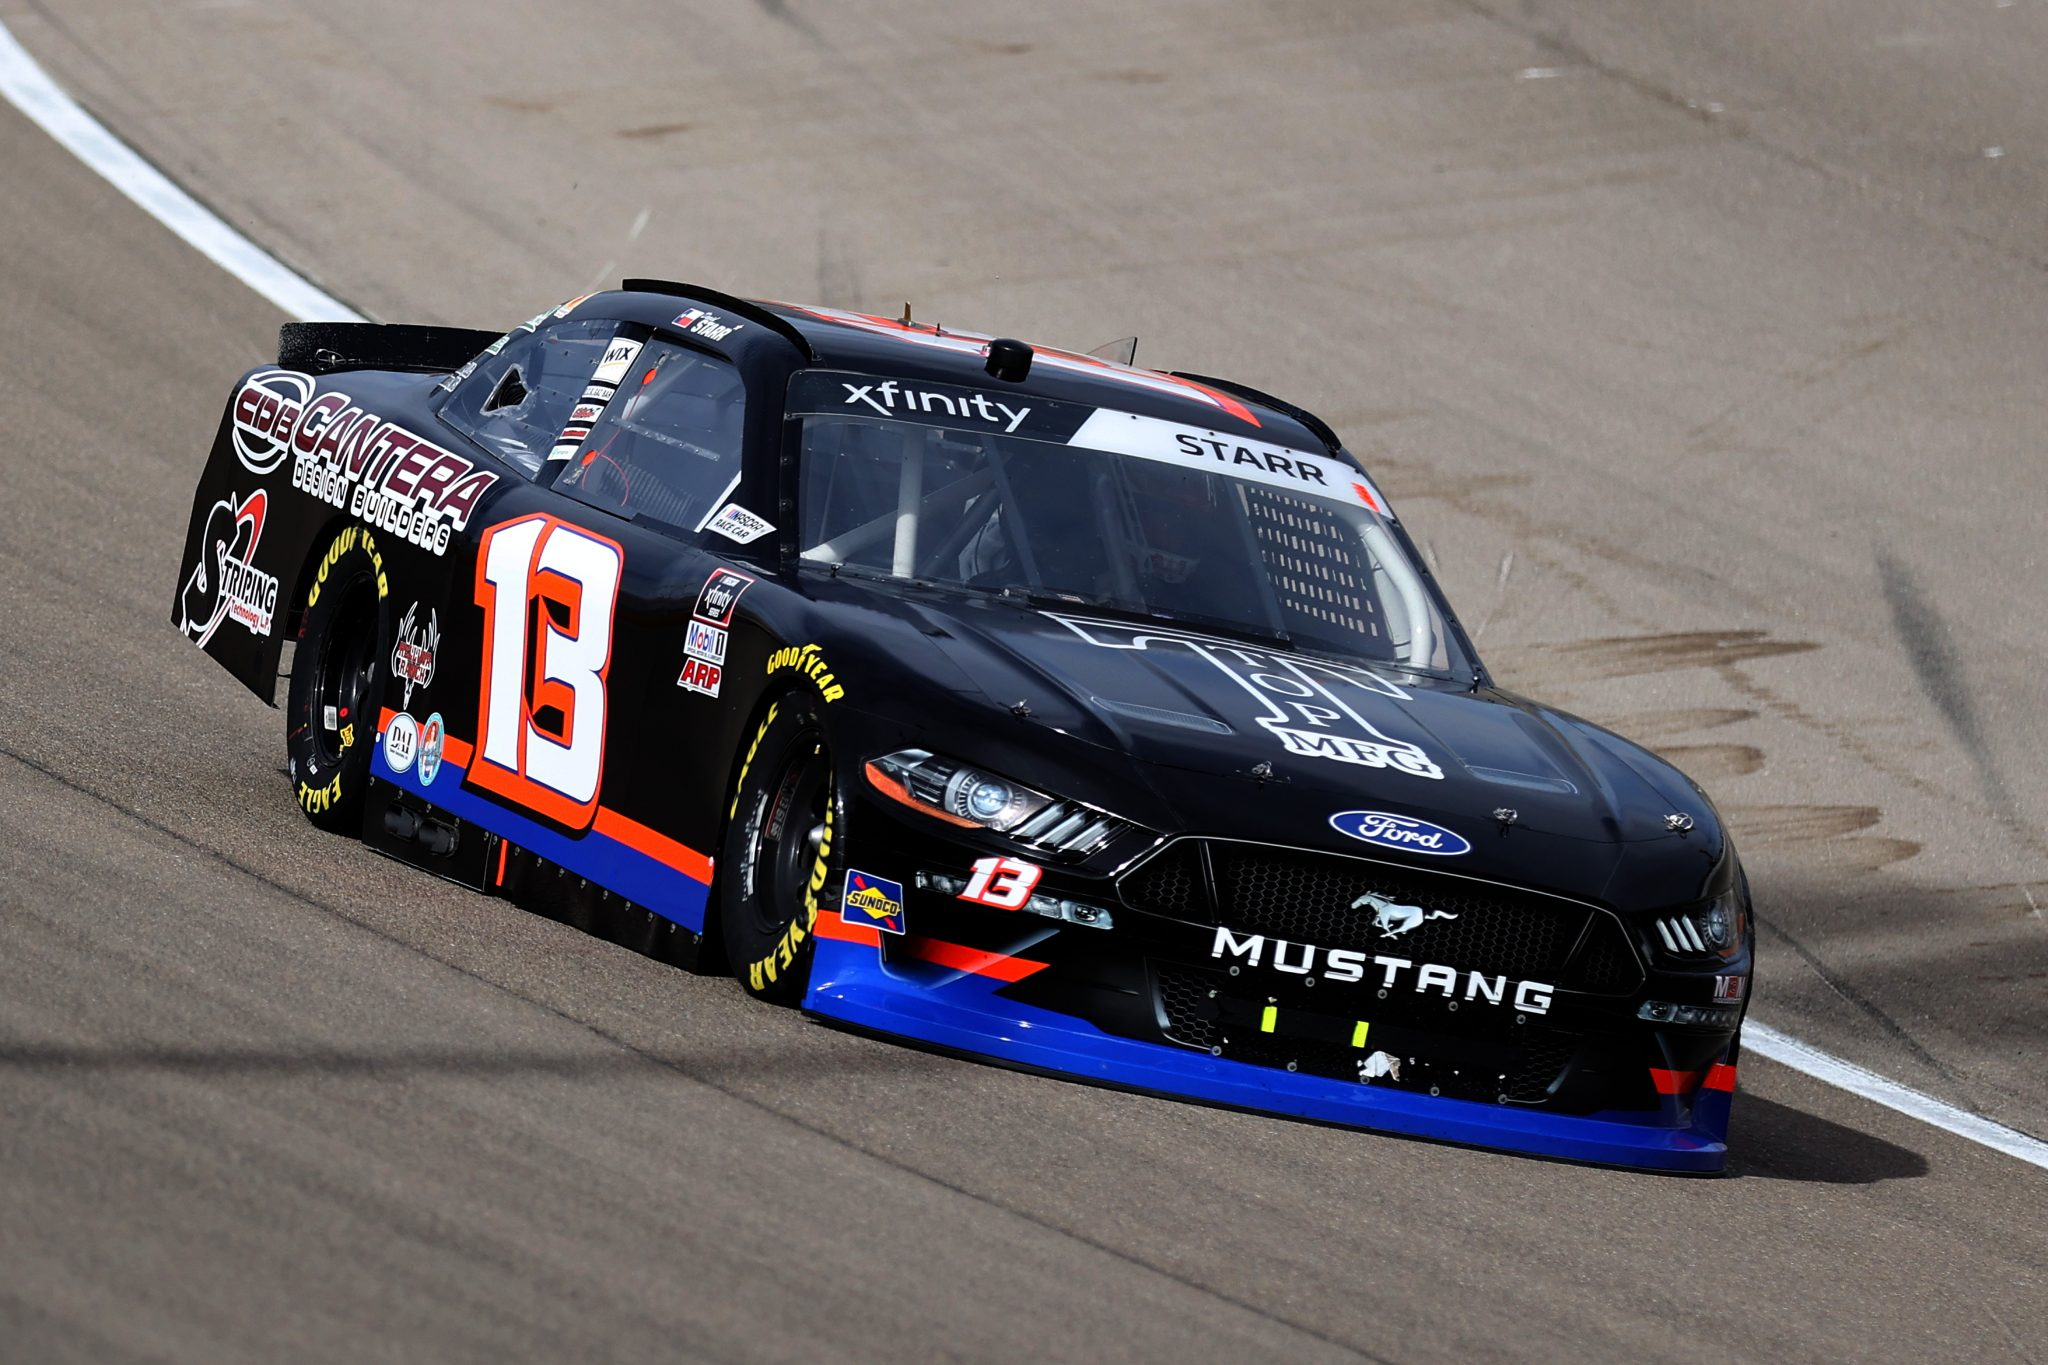 LAS VEGAS, NEVADA - MARCH 06: David Starr, driver of the #13 Ford, drives during the NASCAR Xfinity Series Alsco Uniforms 300 at The Bullring at Las Vegas Motor Speedway on March 06, 2021 in Las Vegas, Nevada. (Photo by Abbie Parr/Getty Images) | Getty Images